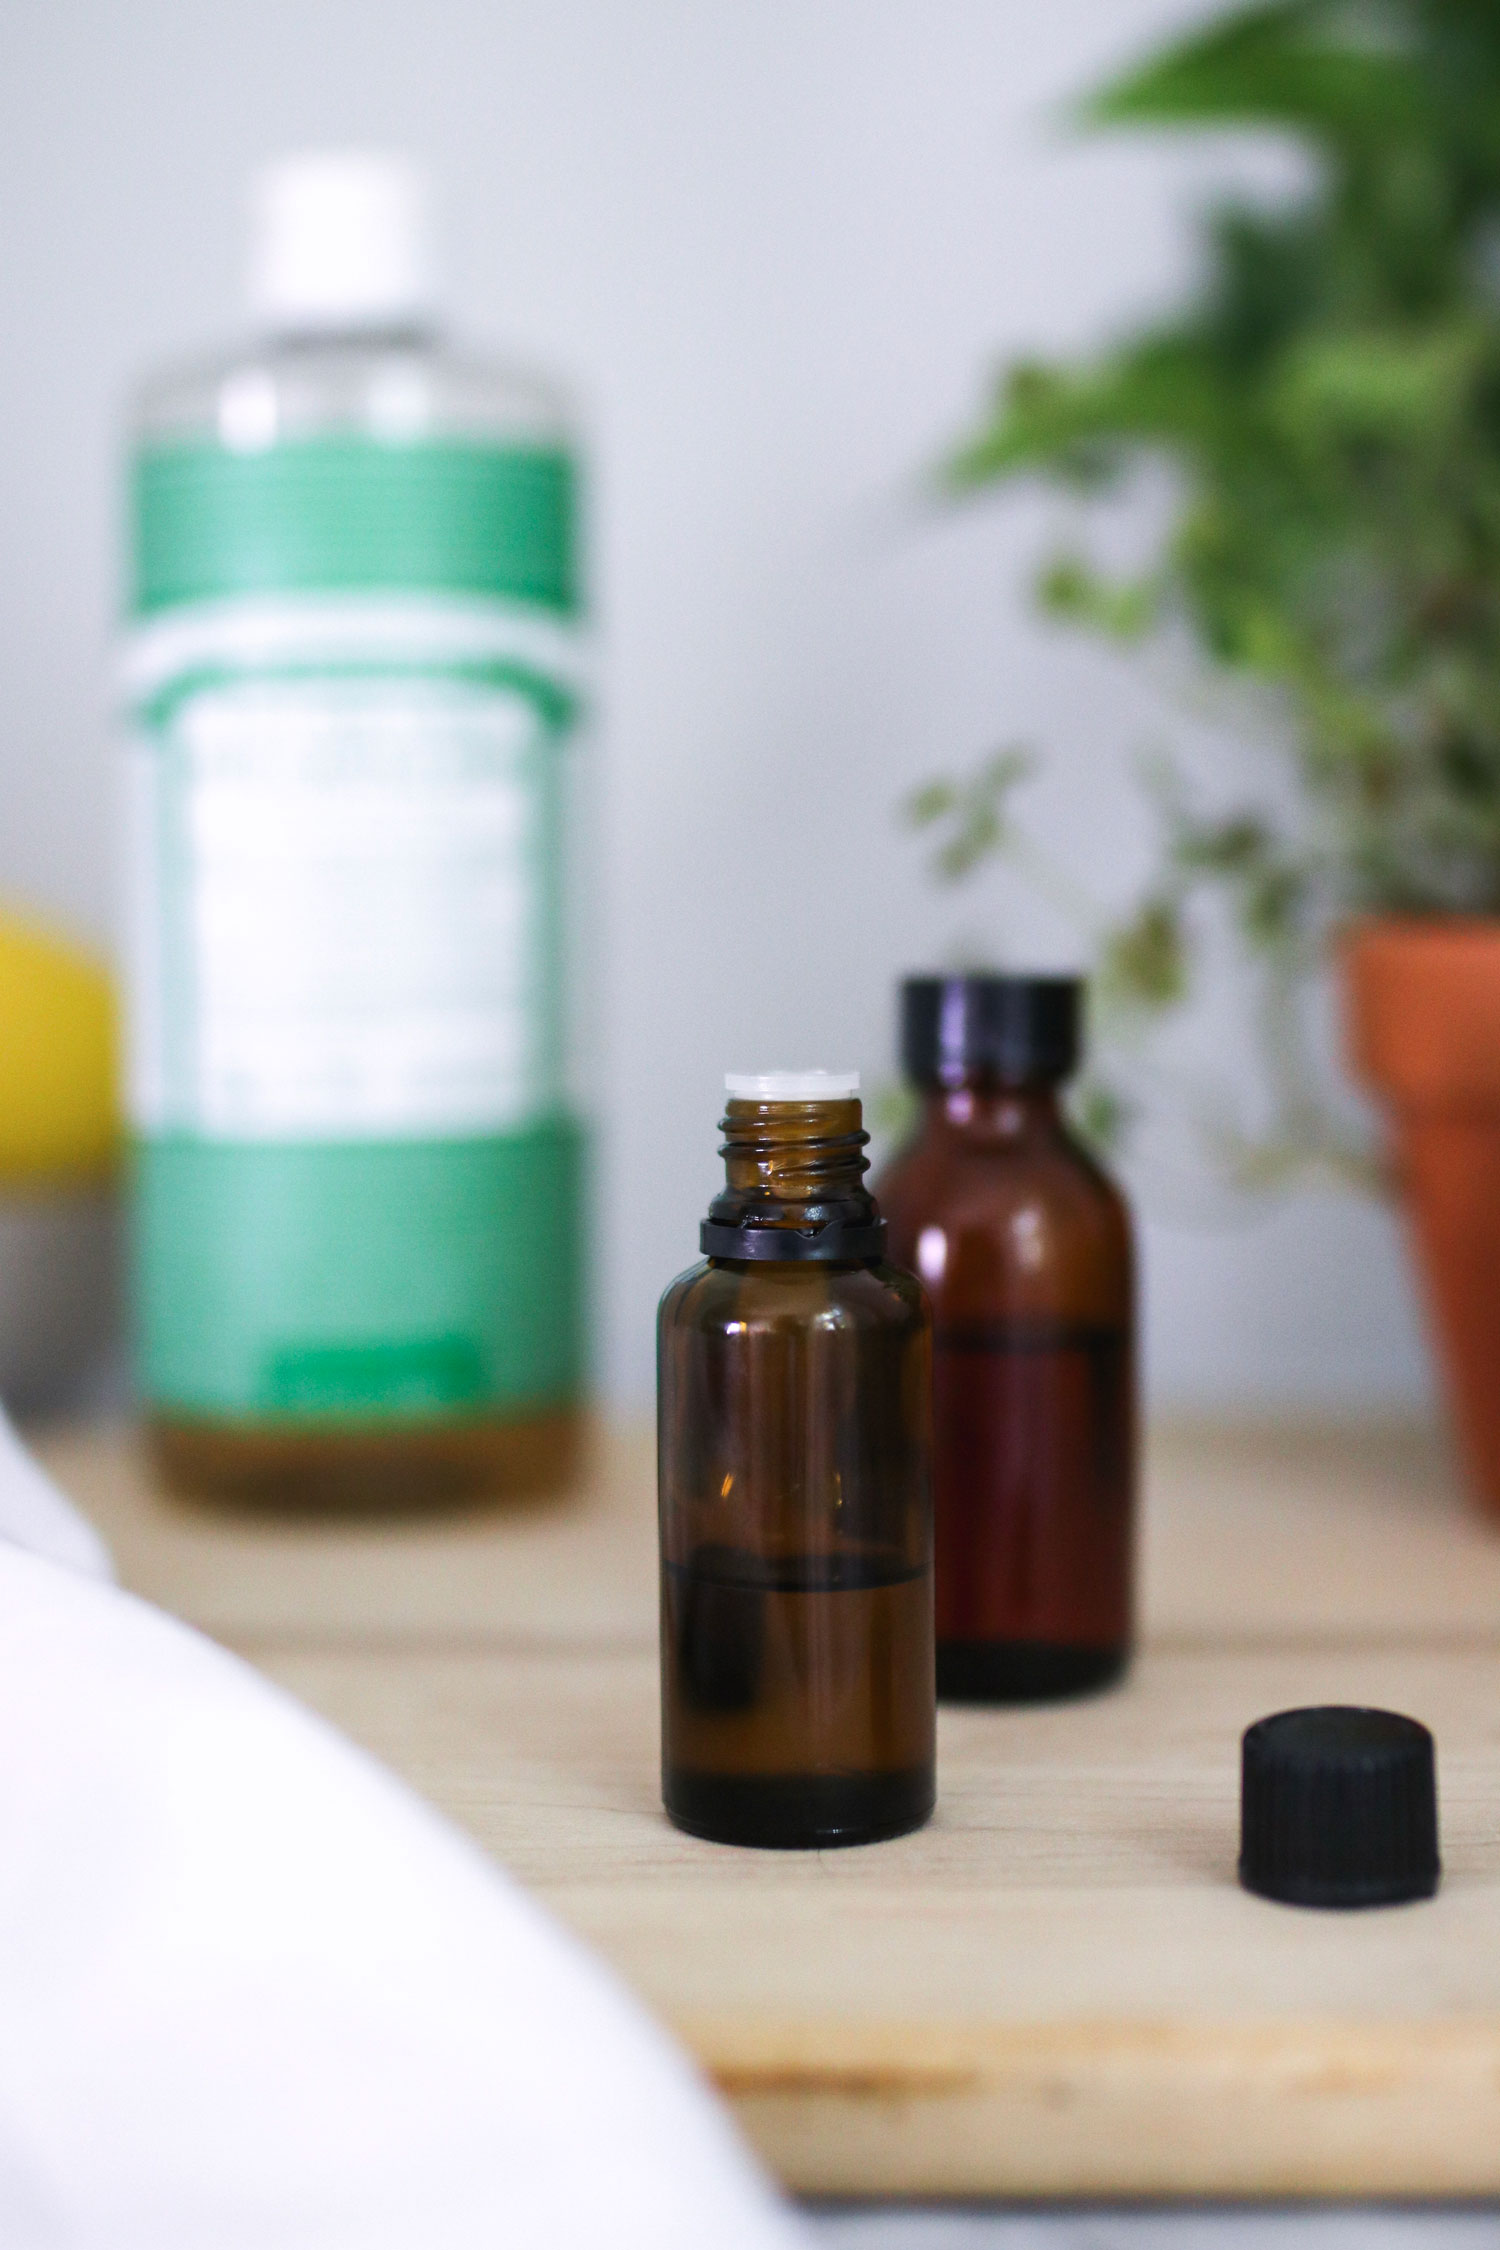 How to clean granite with essential oils